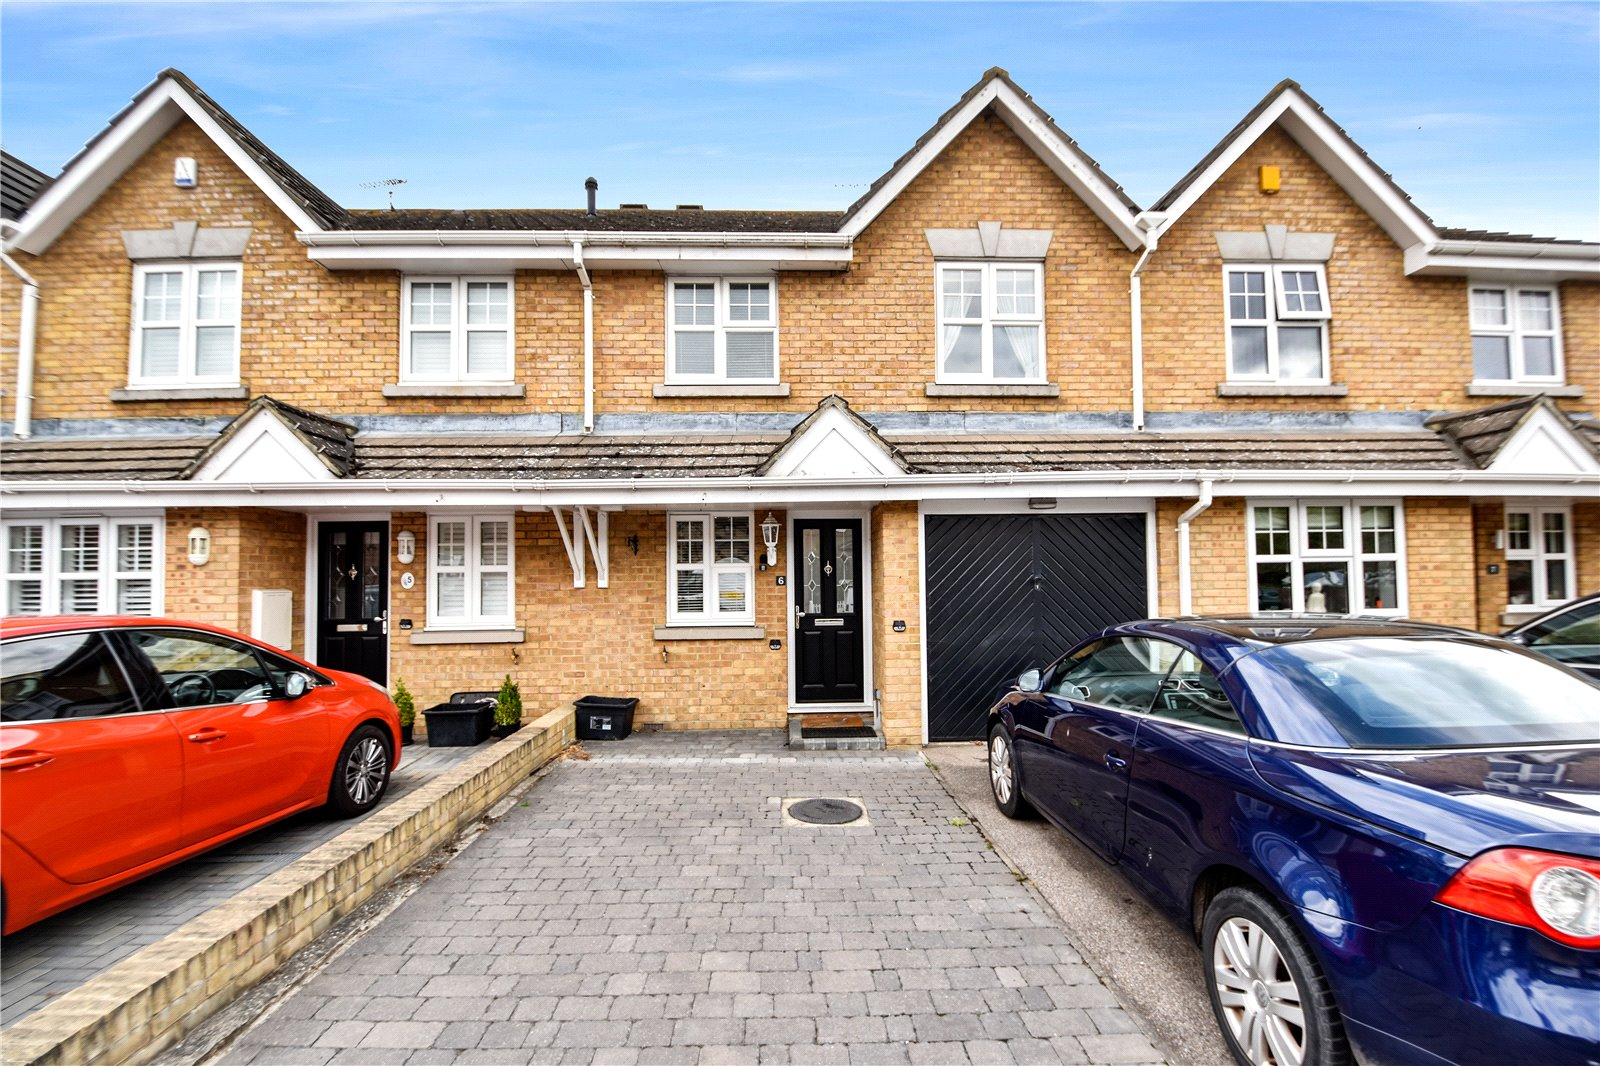 Royal Road, Hawley, Dartford, Kent, DA2